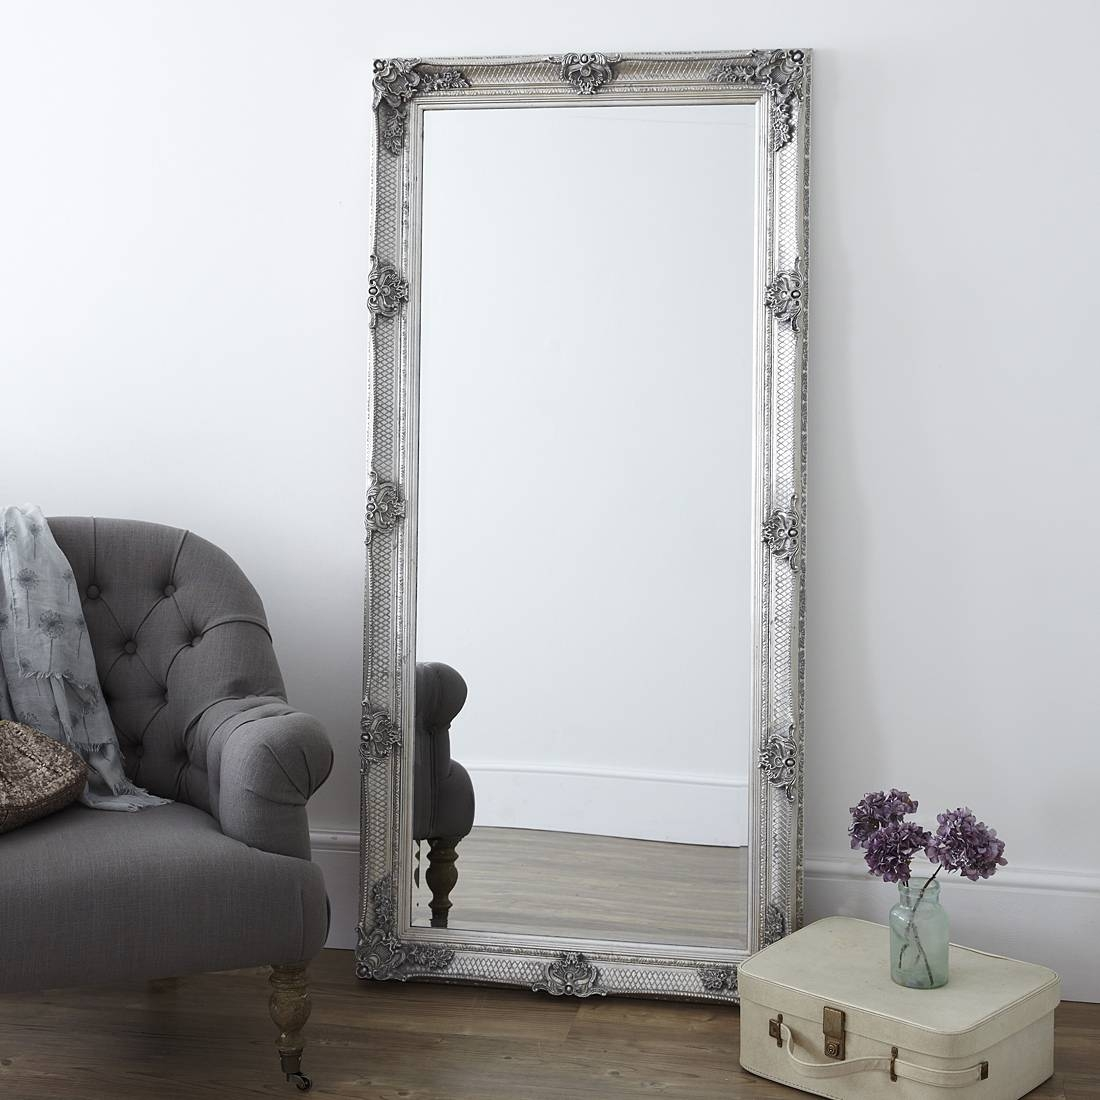 Decorative Antique Silver Full Length Mirror – Primrose & Plum with regard to Ornate Floor Length Mirrors (Image 2 of 15)